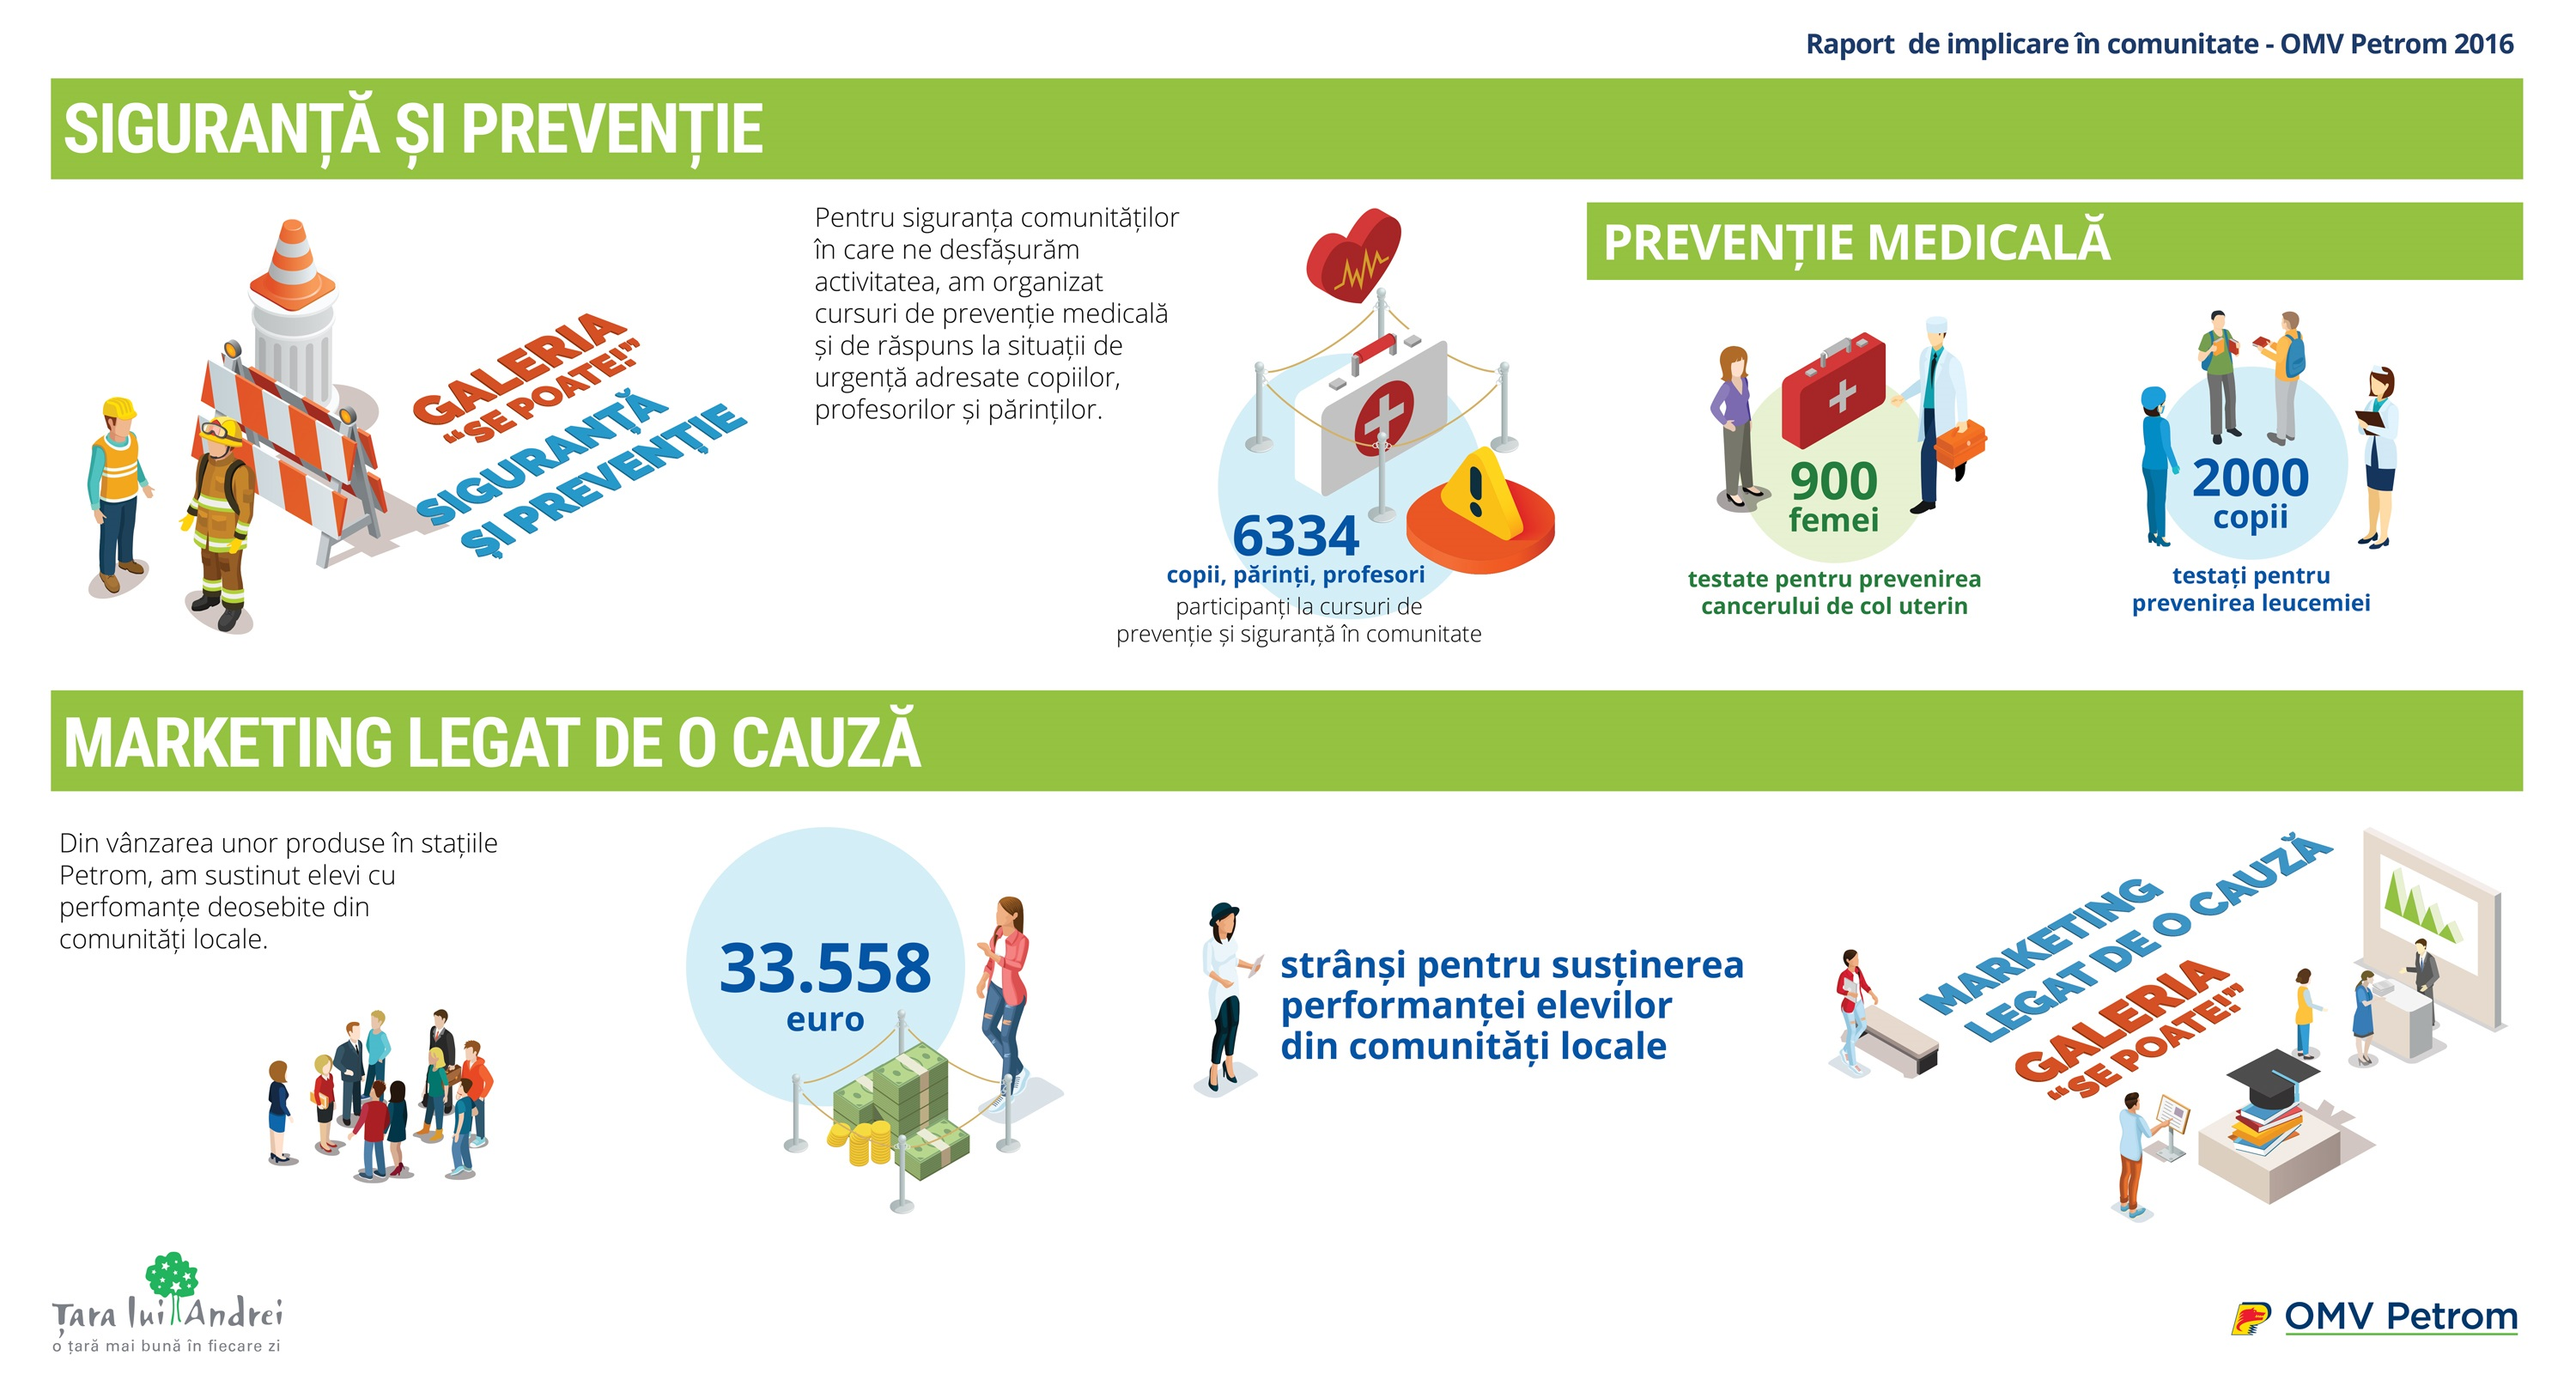 Siguranta & preventie. Marketing legat de o cauza